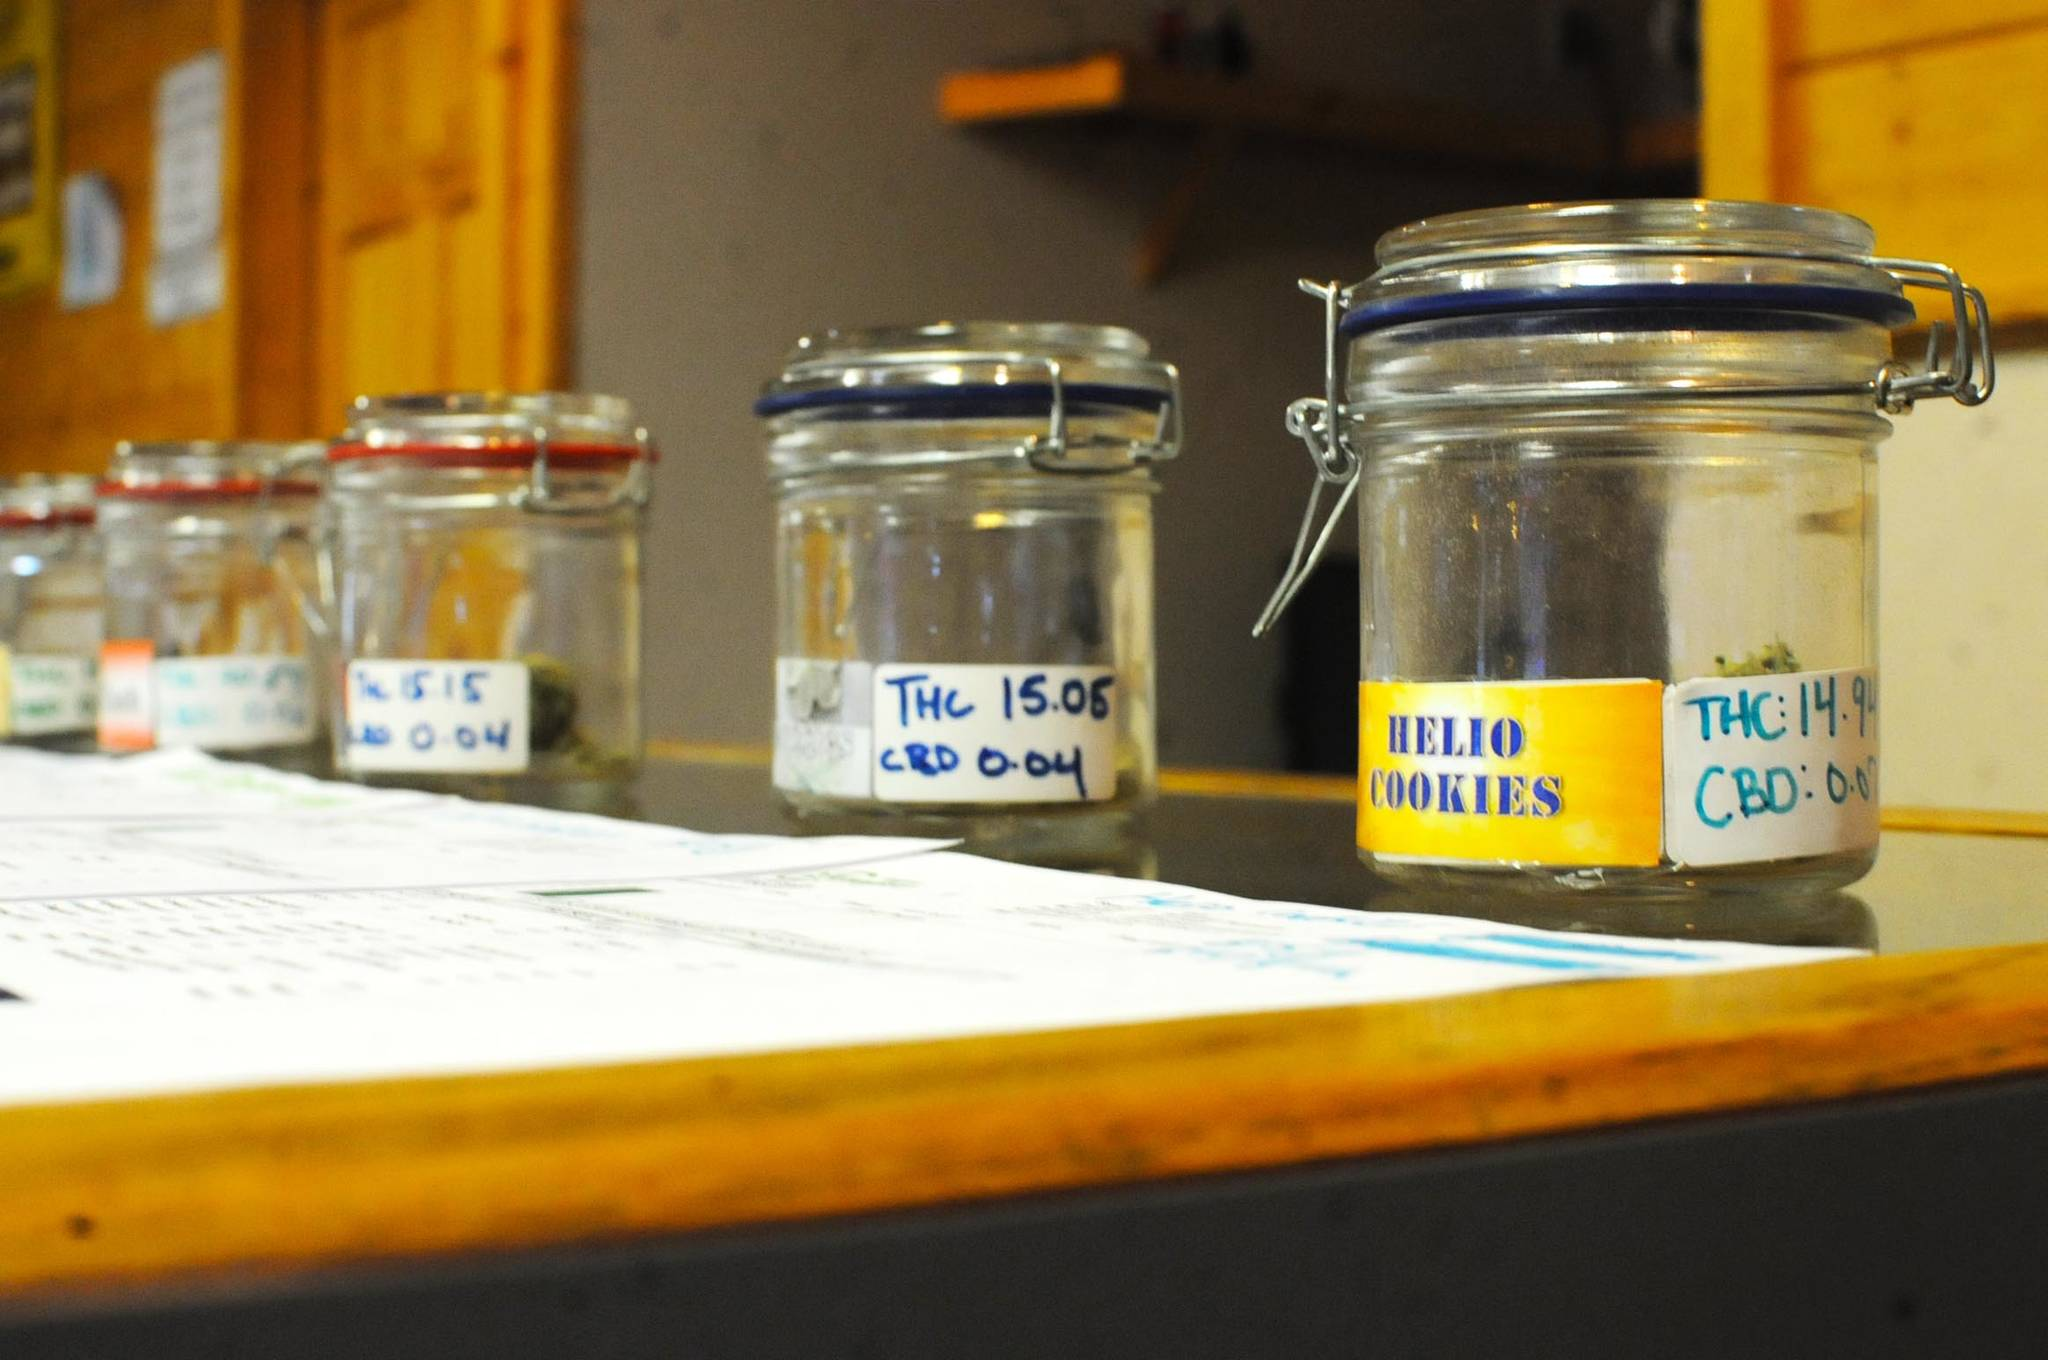 Jars display the various strains of cannabis grown at Permafrost Distributors at the business' Sterling Highway store on Sunday, Dec. 10, 2017 in Sterling, Alaska. The owners opened their Nikiski limited cultivation operation in December 2016 and expanded to the Sterling retail store and cultivation operation in June 2017. (Photo by Elizabeth Earl/Peninsula Clarion)